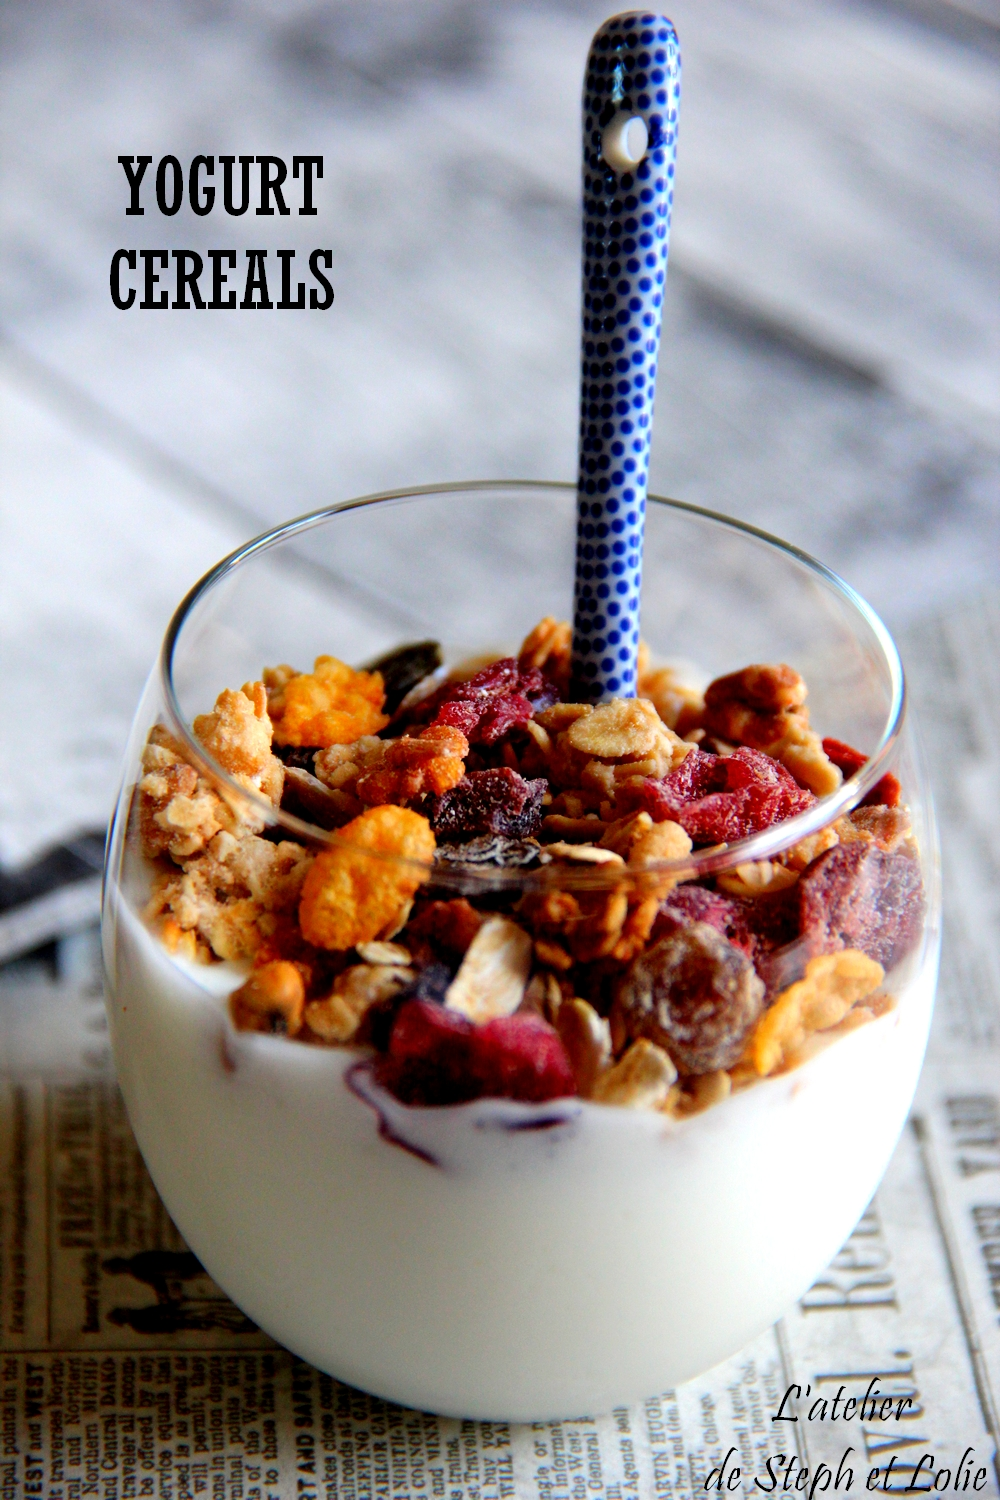 Yogurt cereals